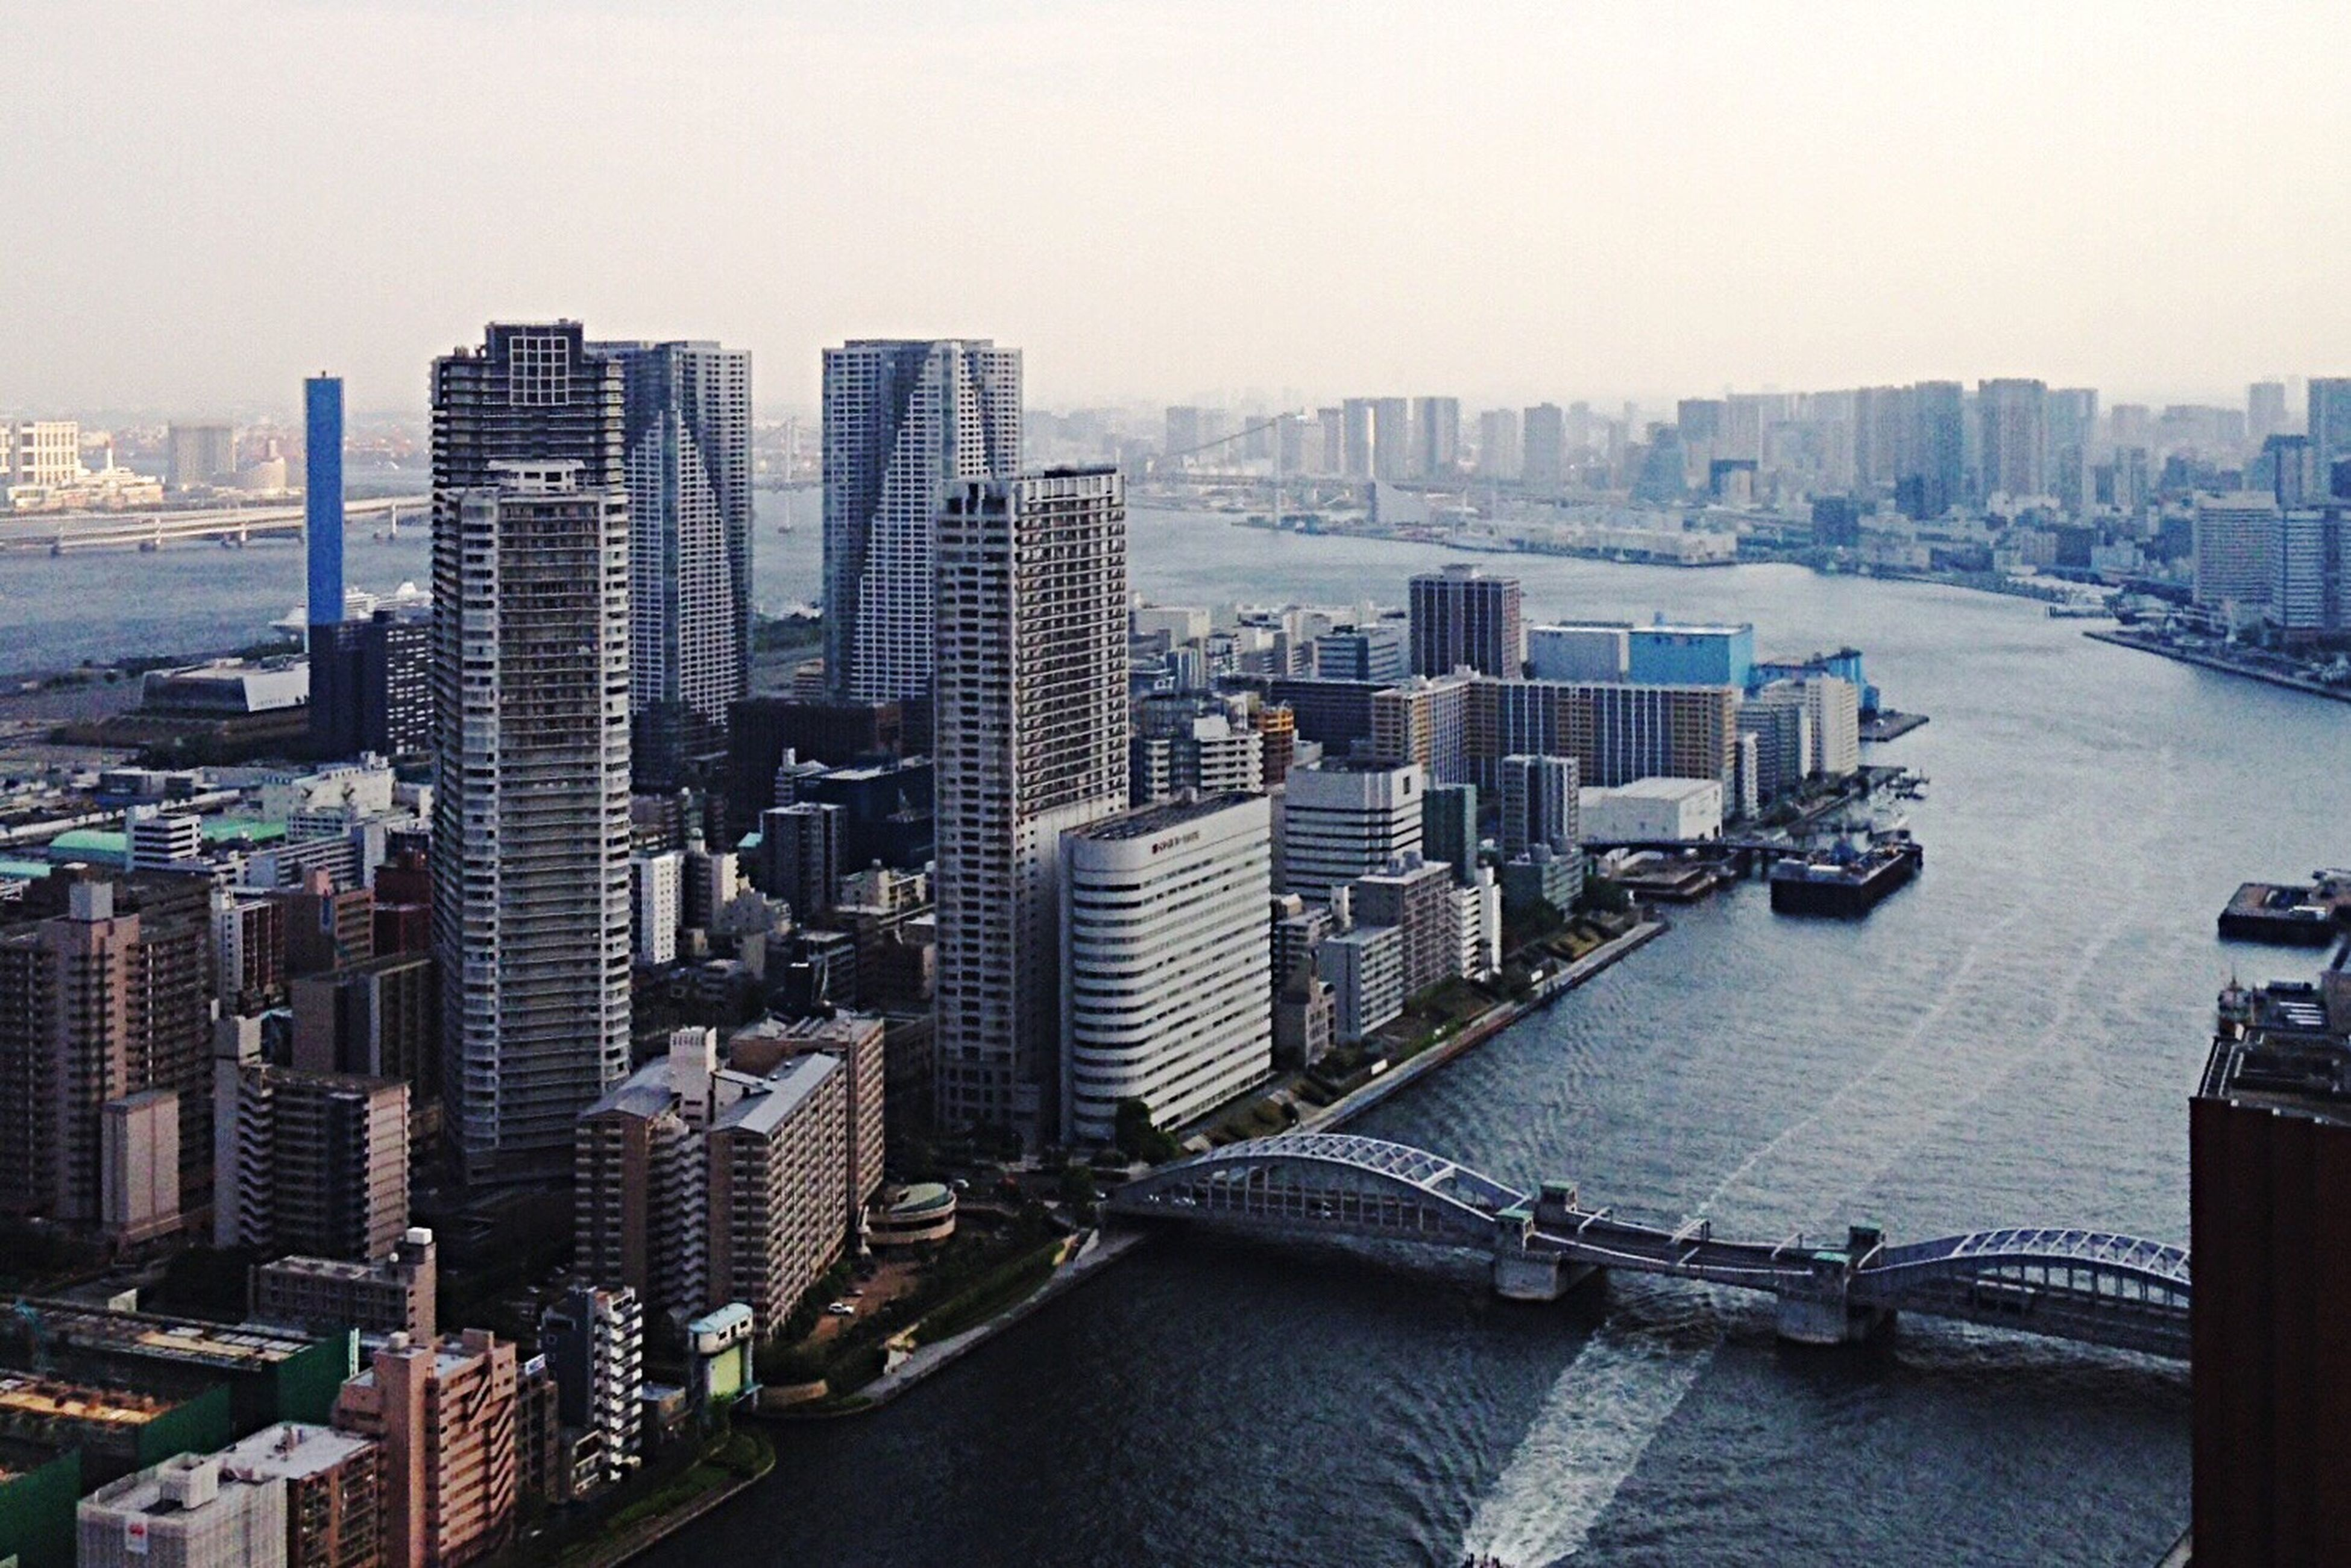 city, architecture, building exterior, built structure, cityscape, skyscraper, urban skyline, office building, tall - high, modern, tower, river, clear sky, transportation, water, skyline, financial district, city life, high angle view, sky